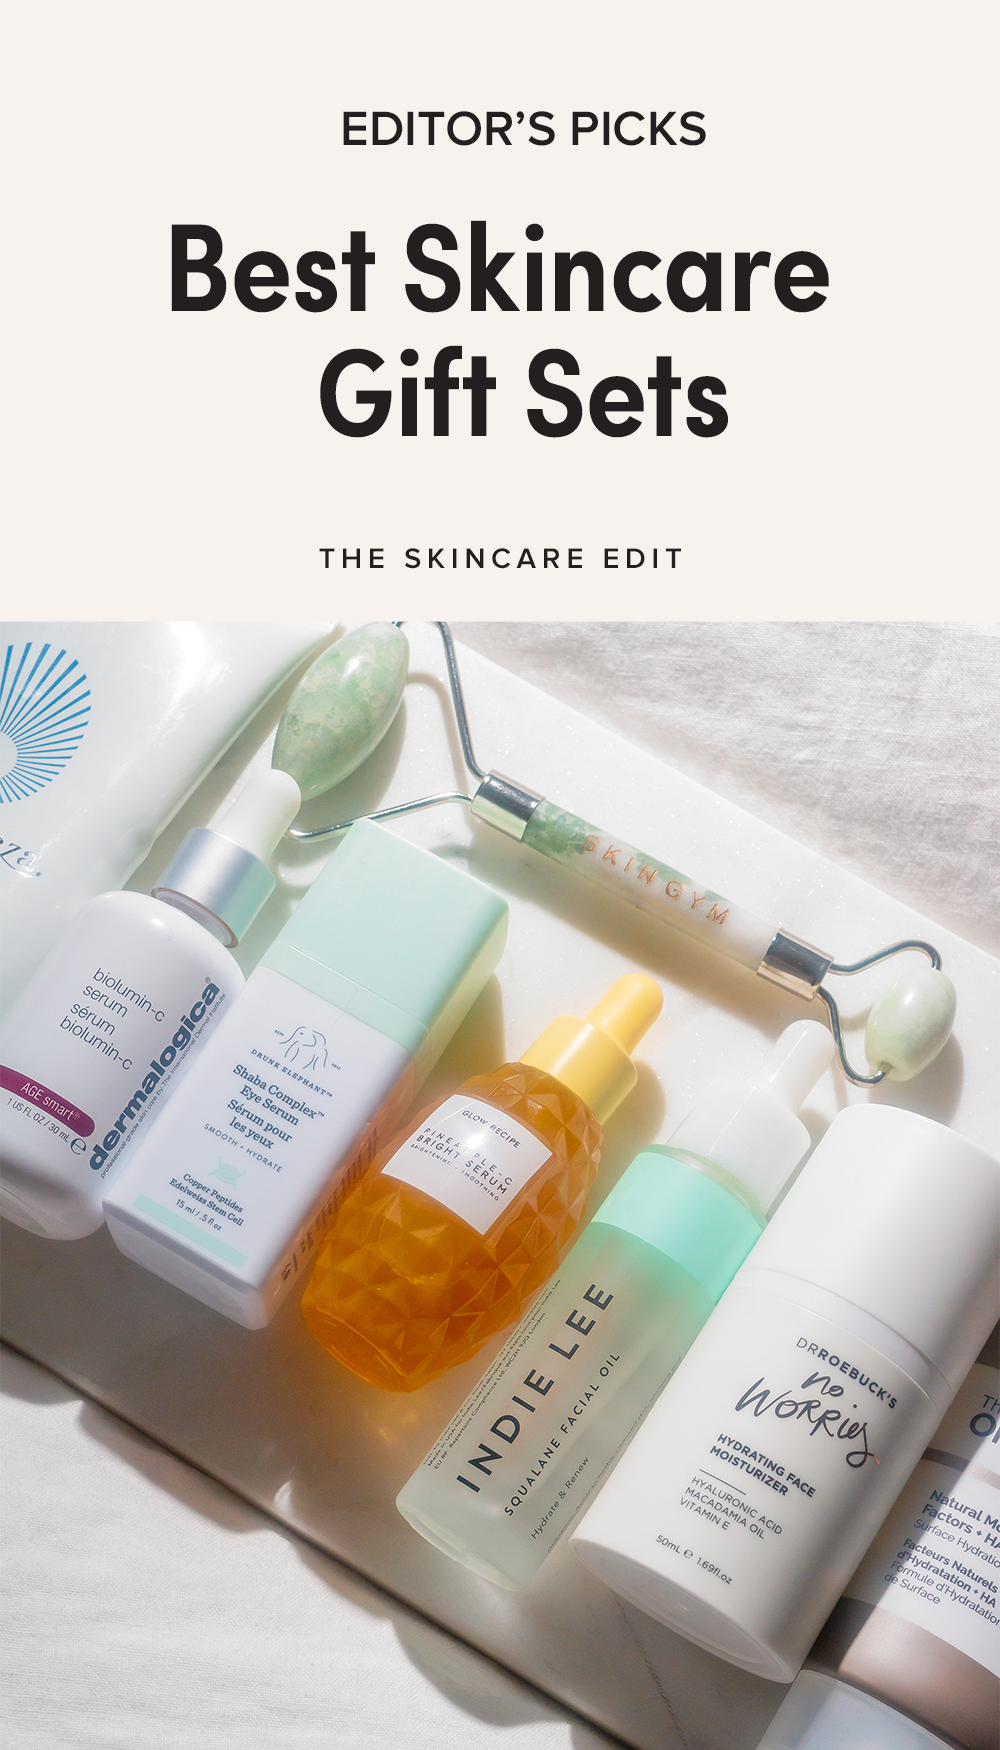 Gift Guide 26 Of The Best Skincare Gift Sets For Every Skin Type And Budget Skincare Gift Set Skin Care Gifts Beauty Products Gifts